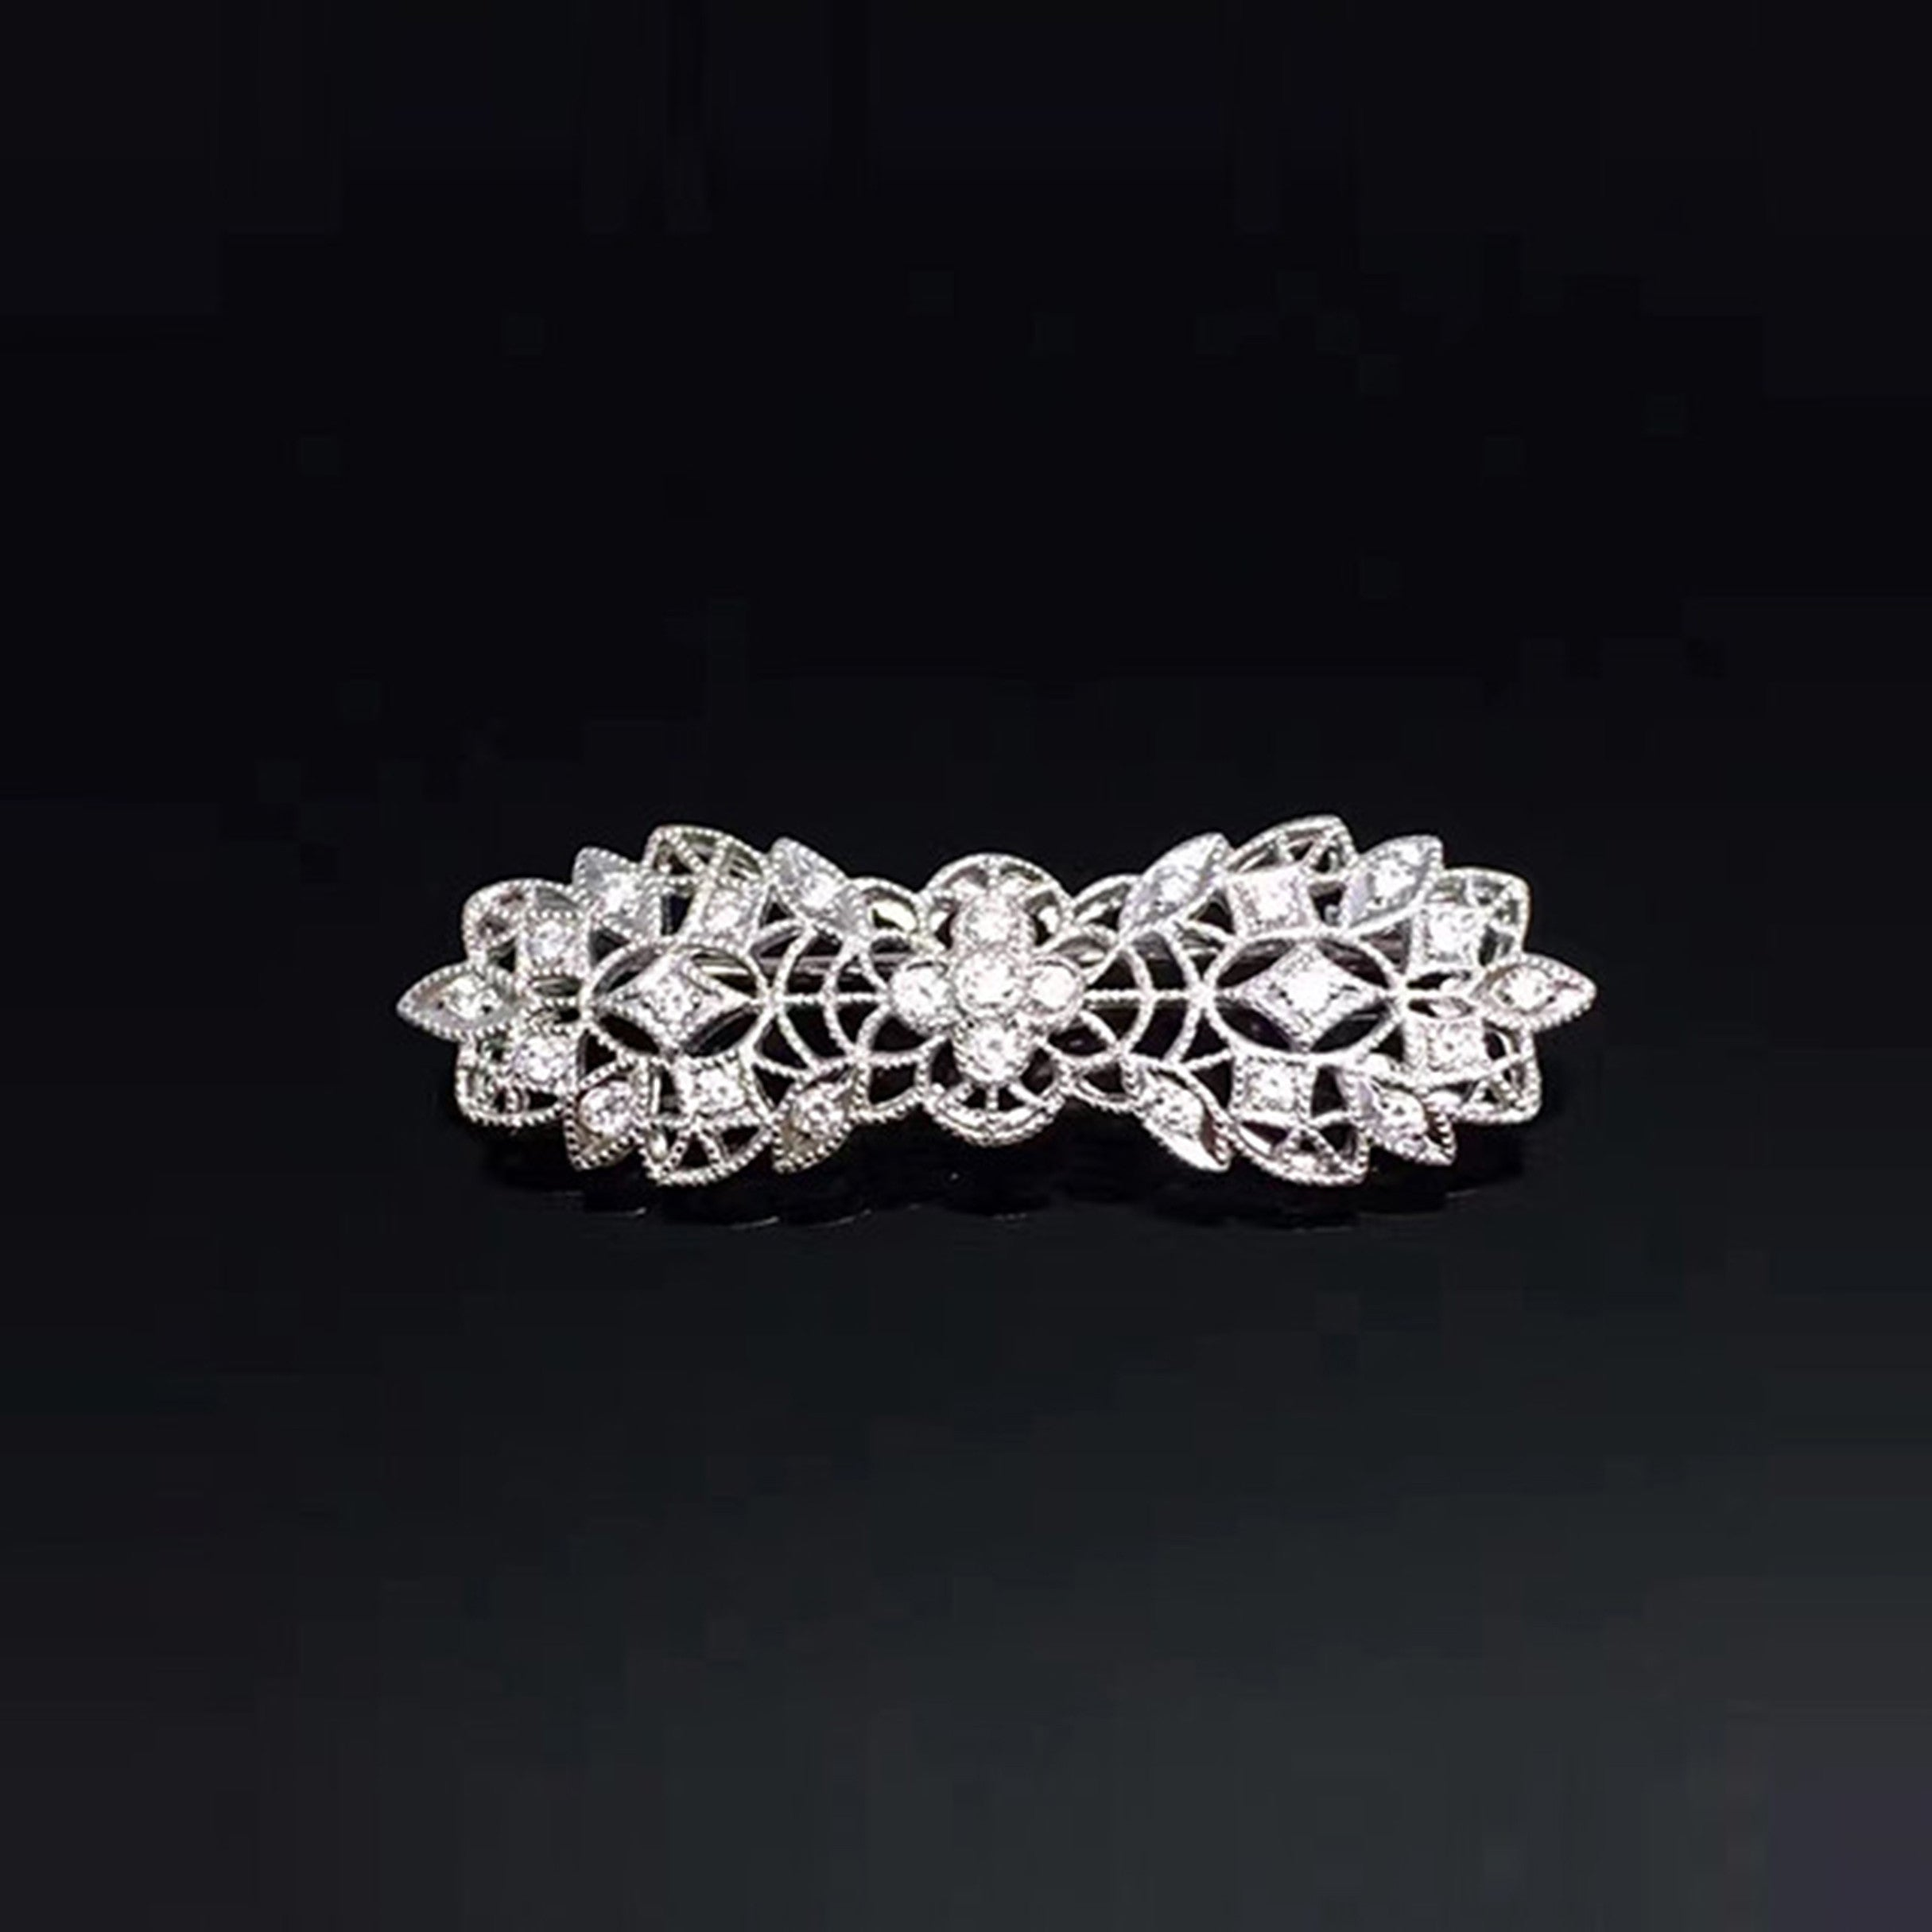 ring catalog diamond single wg row carat